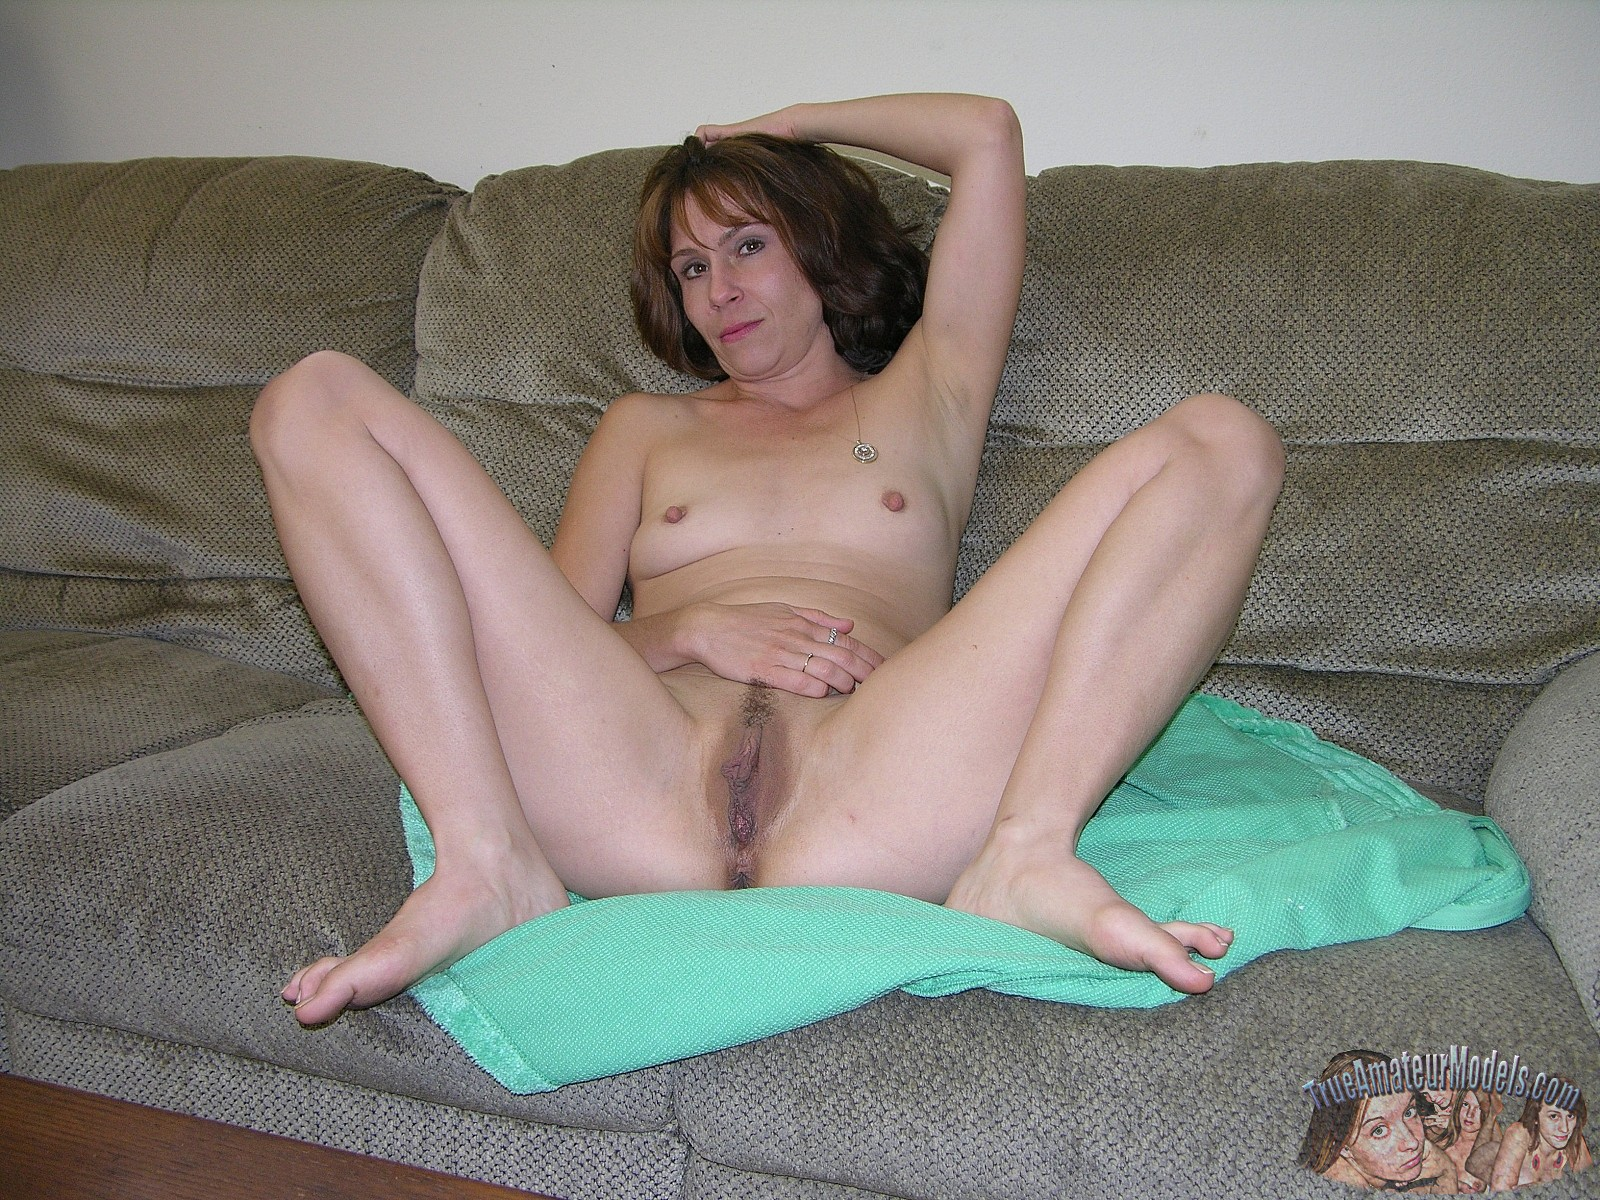 Amateur Porn Housewife bored anonymous mature housewife tried out her first amateur